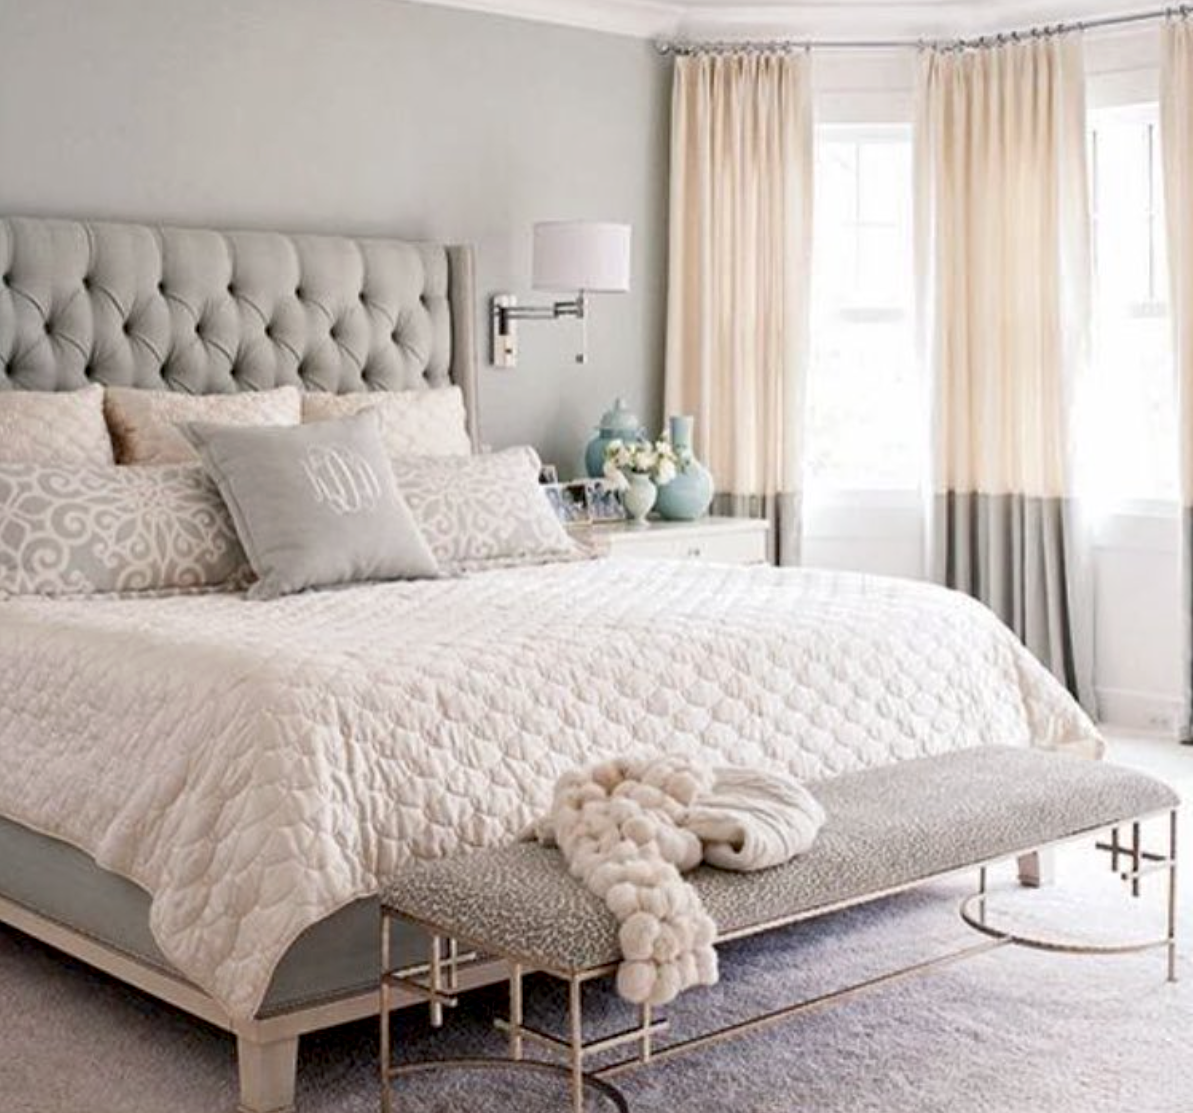 Bedroom Decor Ideas   Transitional Style, Light Grey, Cream And White Color  Palette. Tufted Headboard, Bench, Drum Wall Sconces Above Side Tables And  Full ...